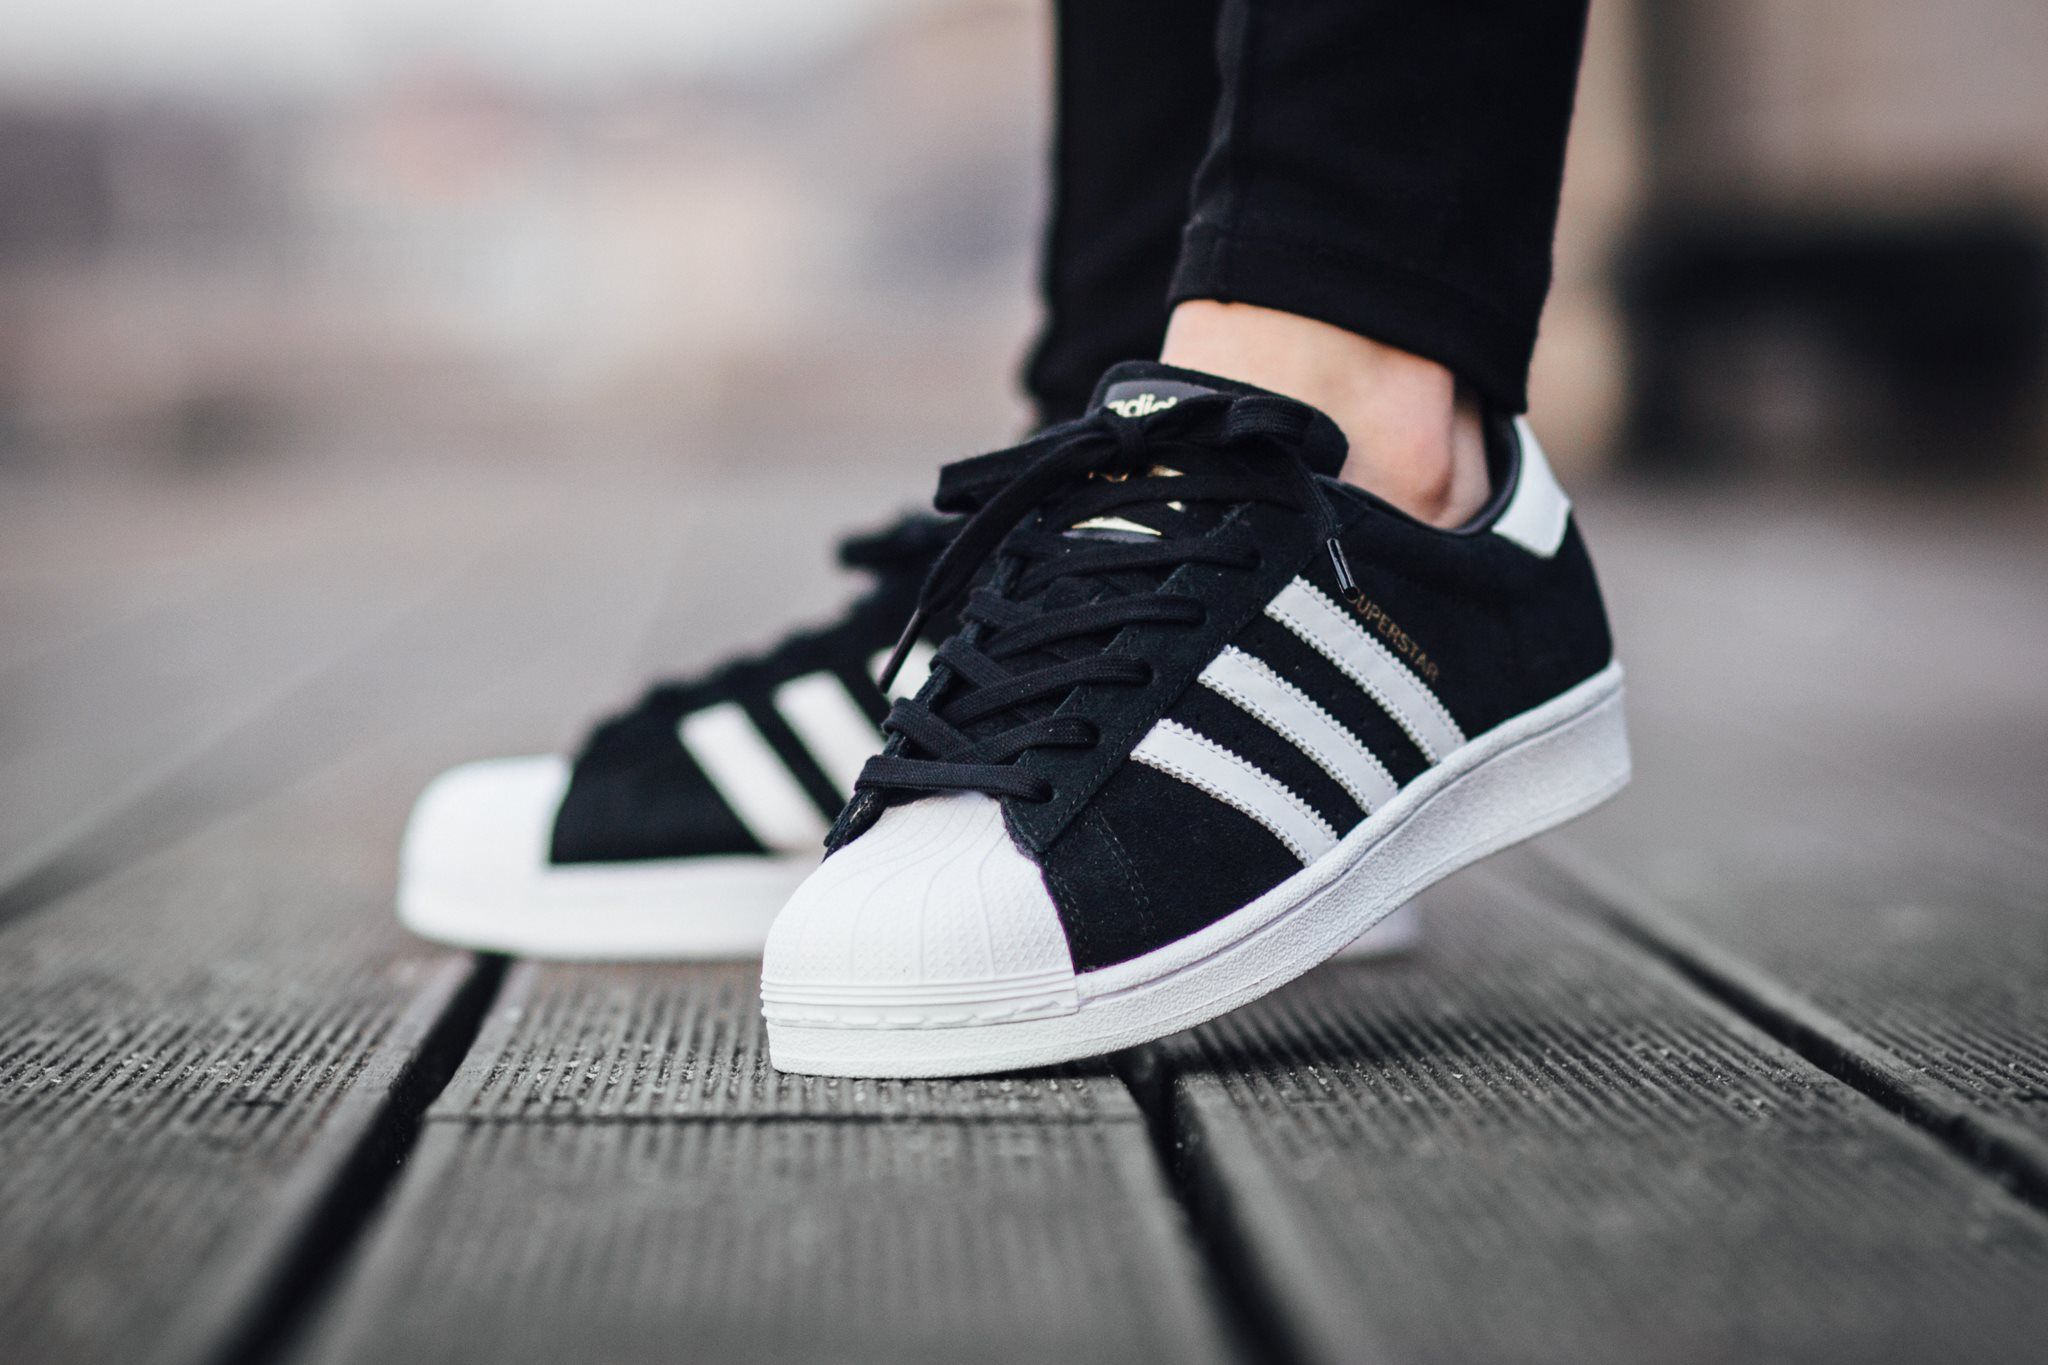 af6069f5648 superstar adidas black white adidas superstar retro